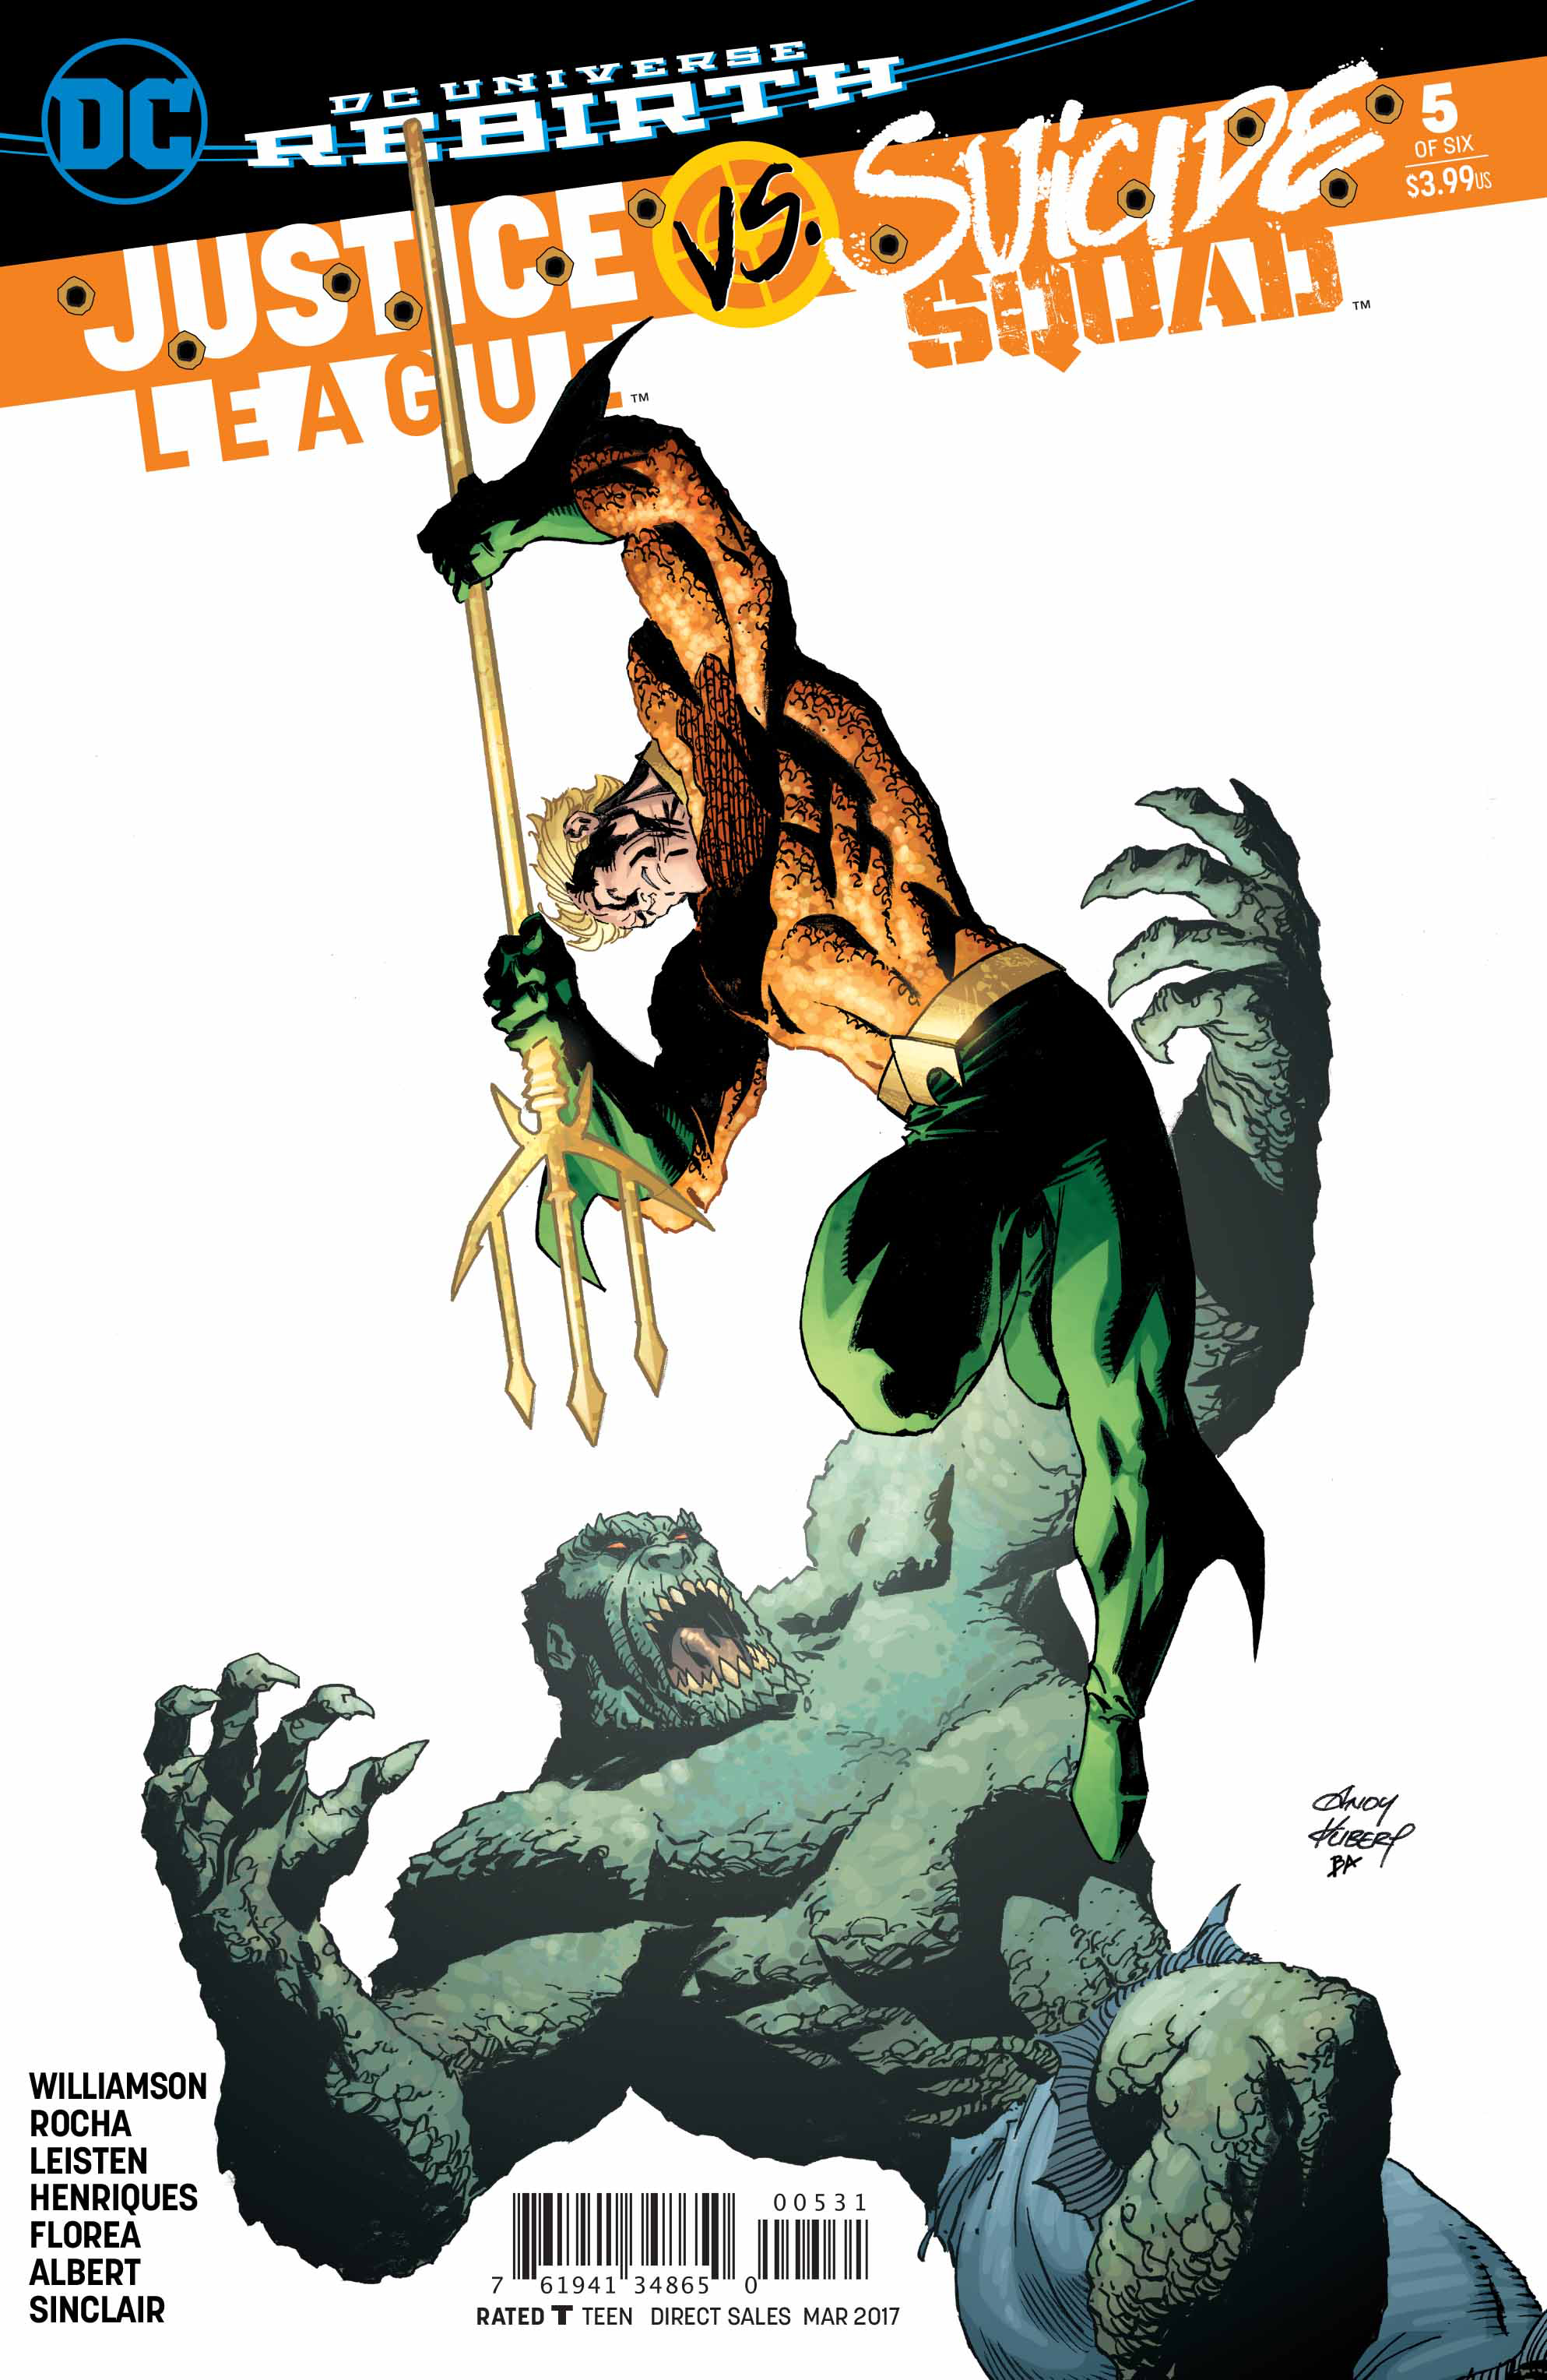 JUSTICE LEAGUE SUICIDE SQUAD #5 (OF 6) KUBERT VAR ED